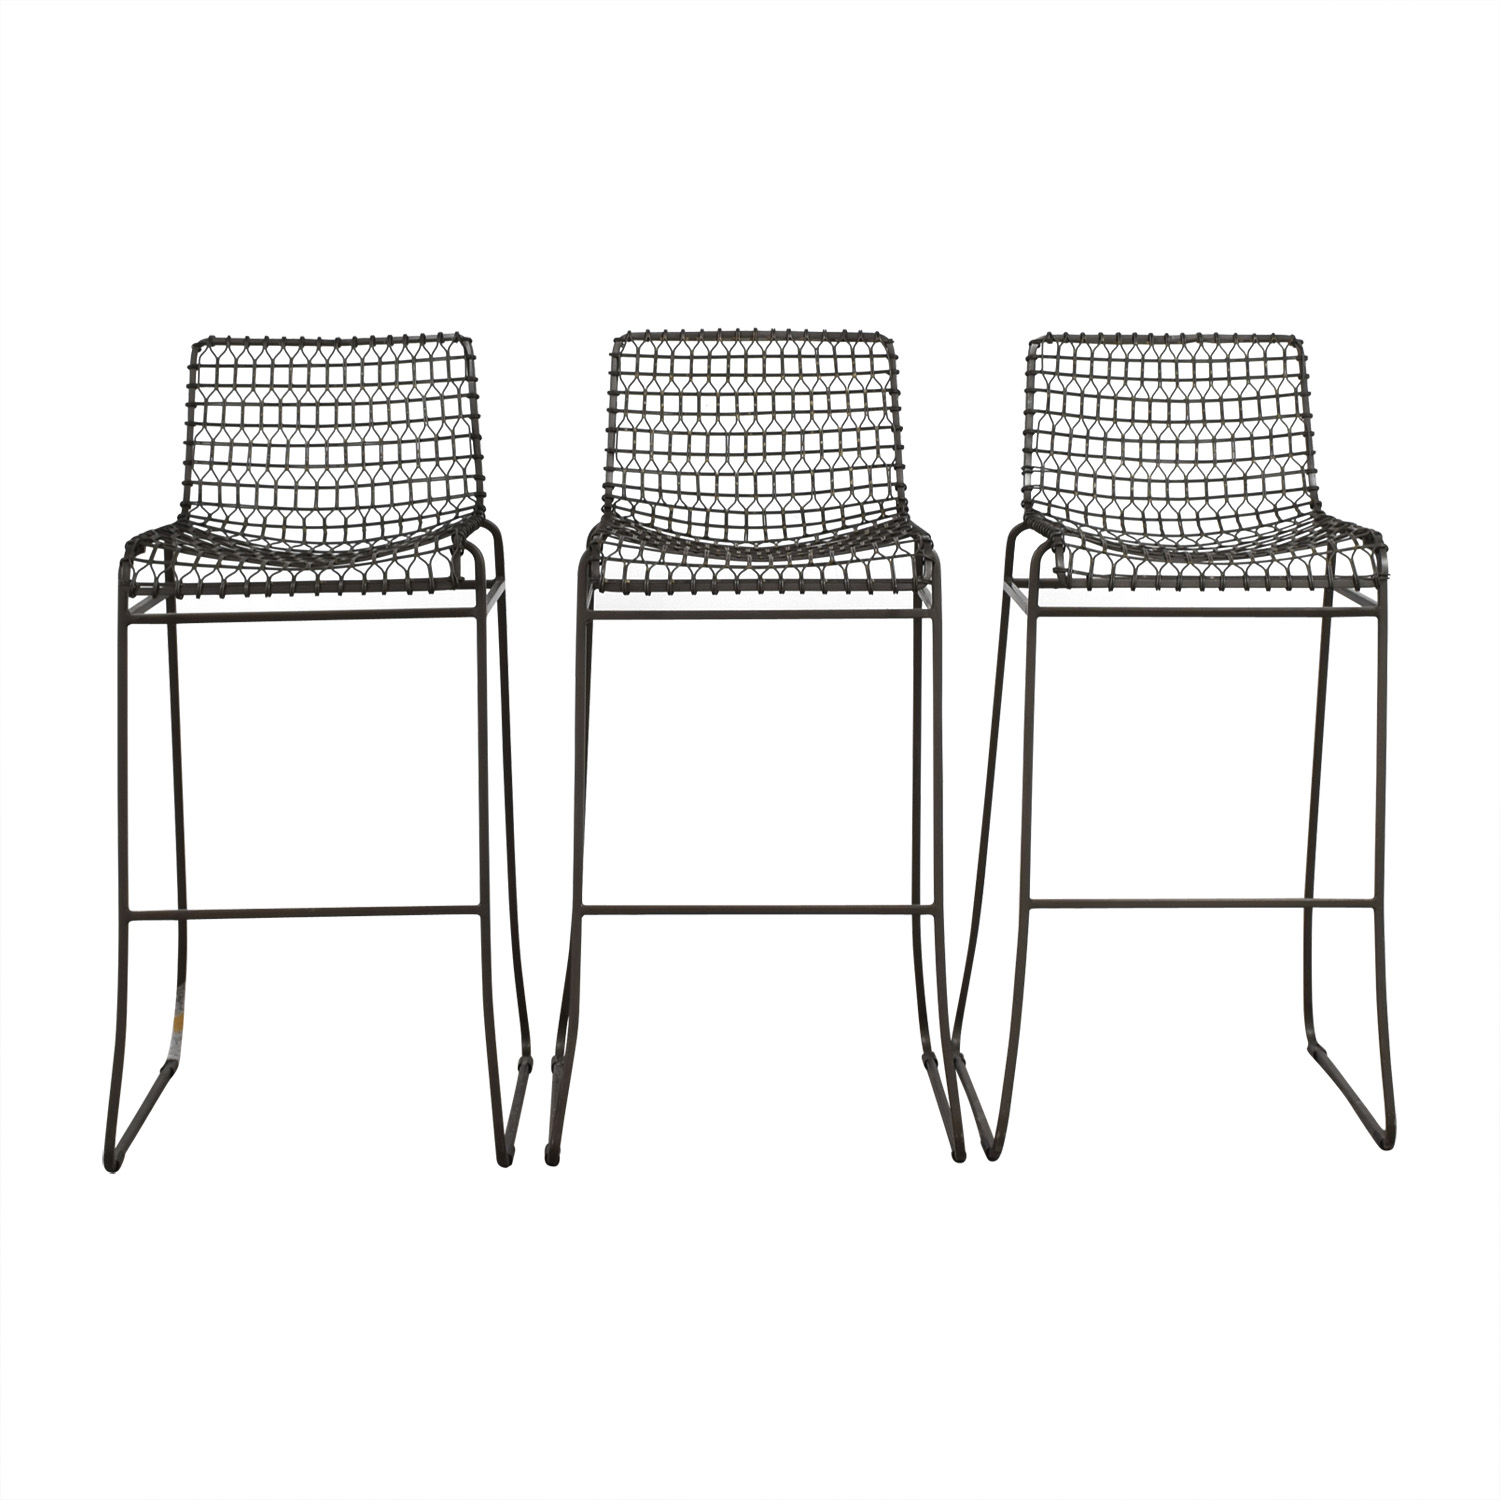 Tremendous 86 Off Crate Barrel Crate Barrel Metal Bar Stools Chairs Ncnpc Chair Design For Home Ncnpcorg